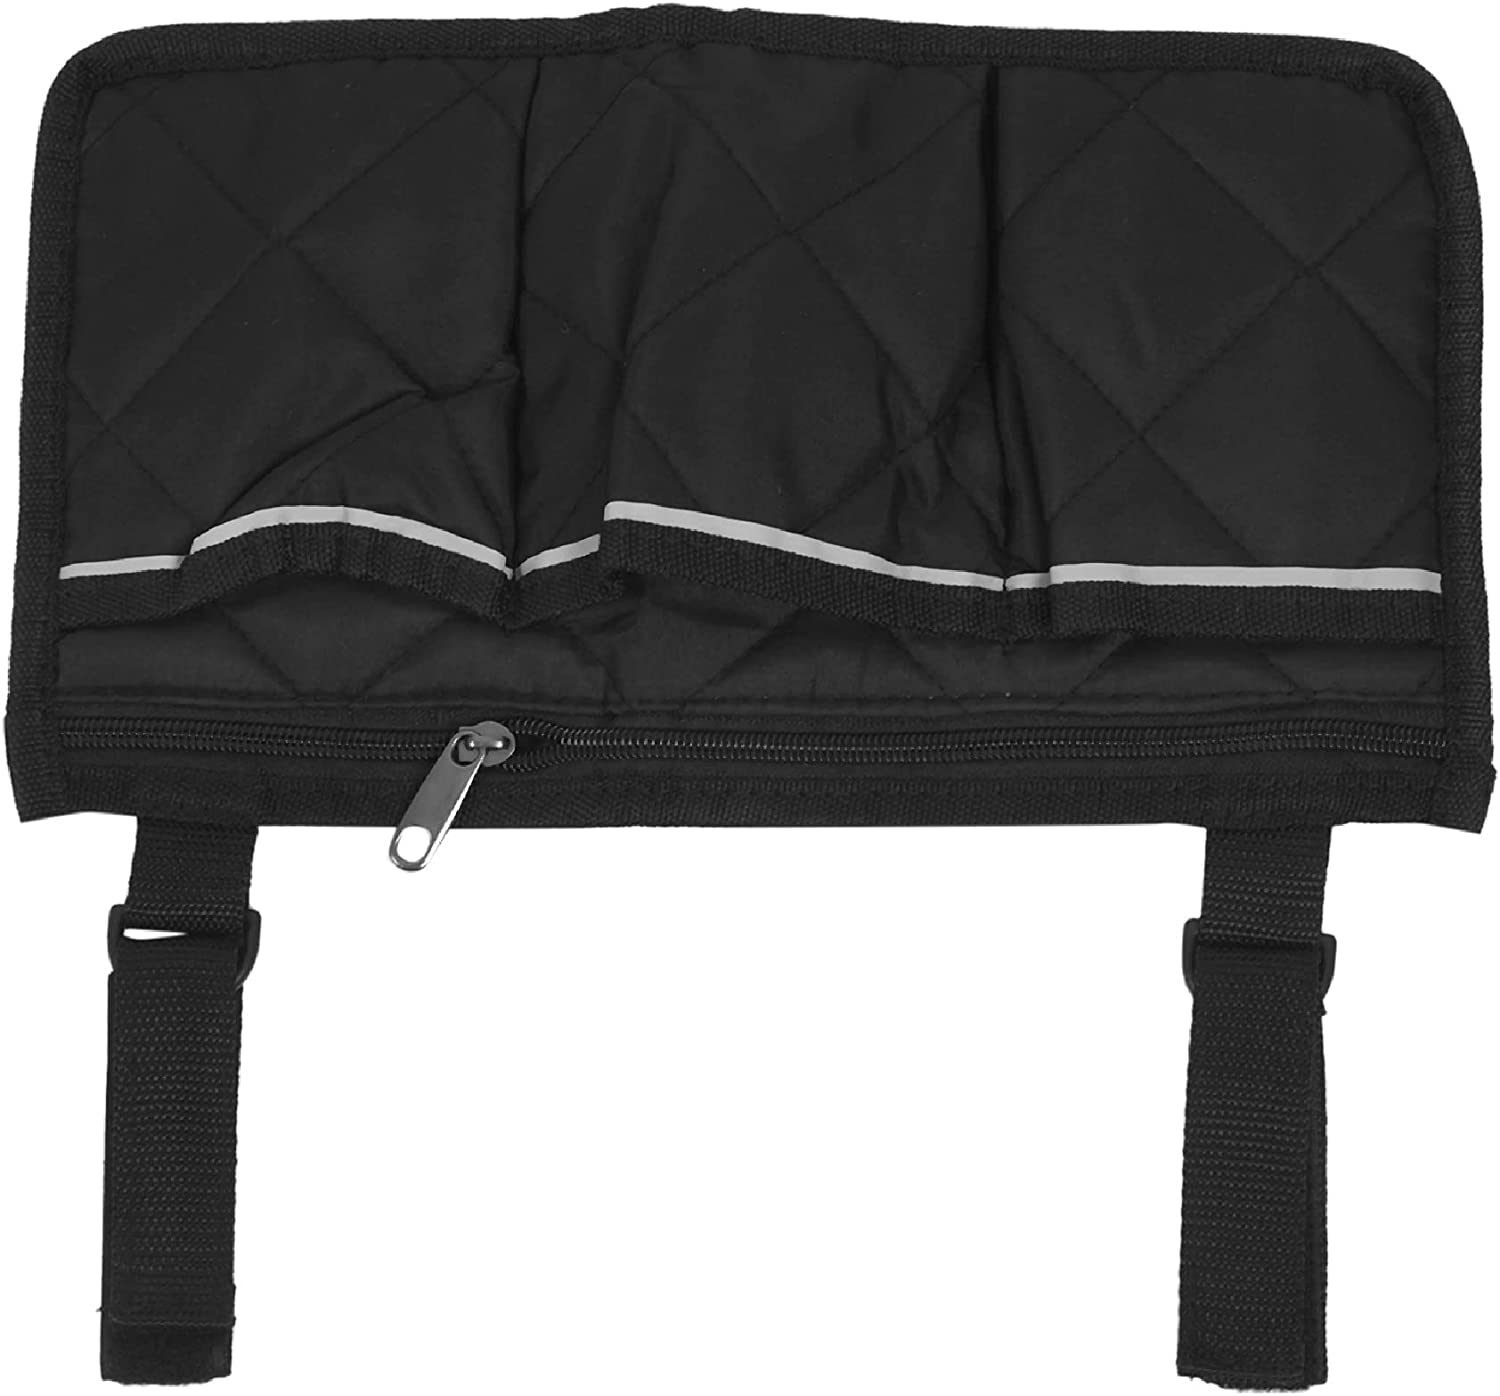 Deesen Max 83% OFF Wheelchair Side Bag Pouch for Storage Popular product Back